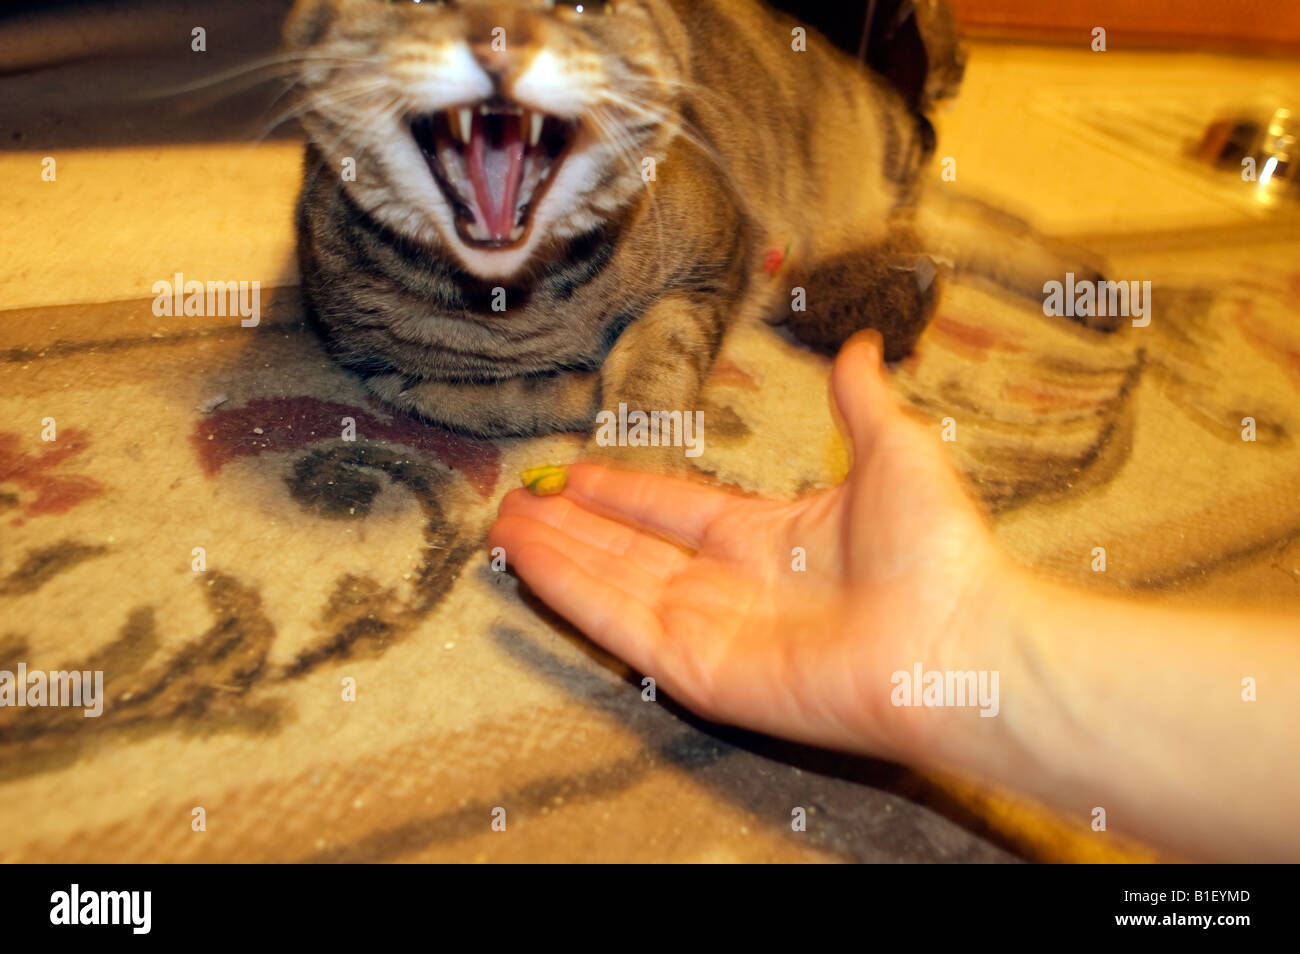 Cat hisses while being fed a treat - Stock Image